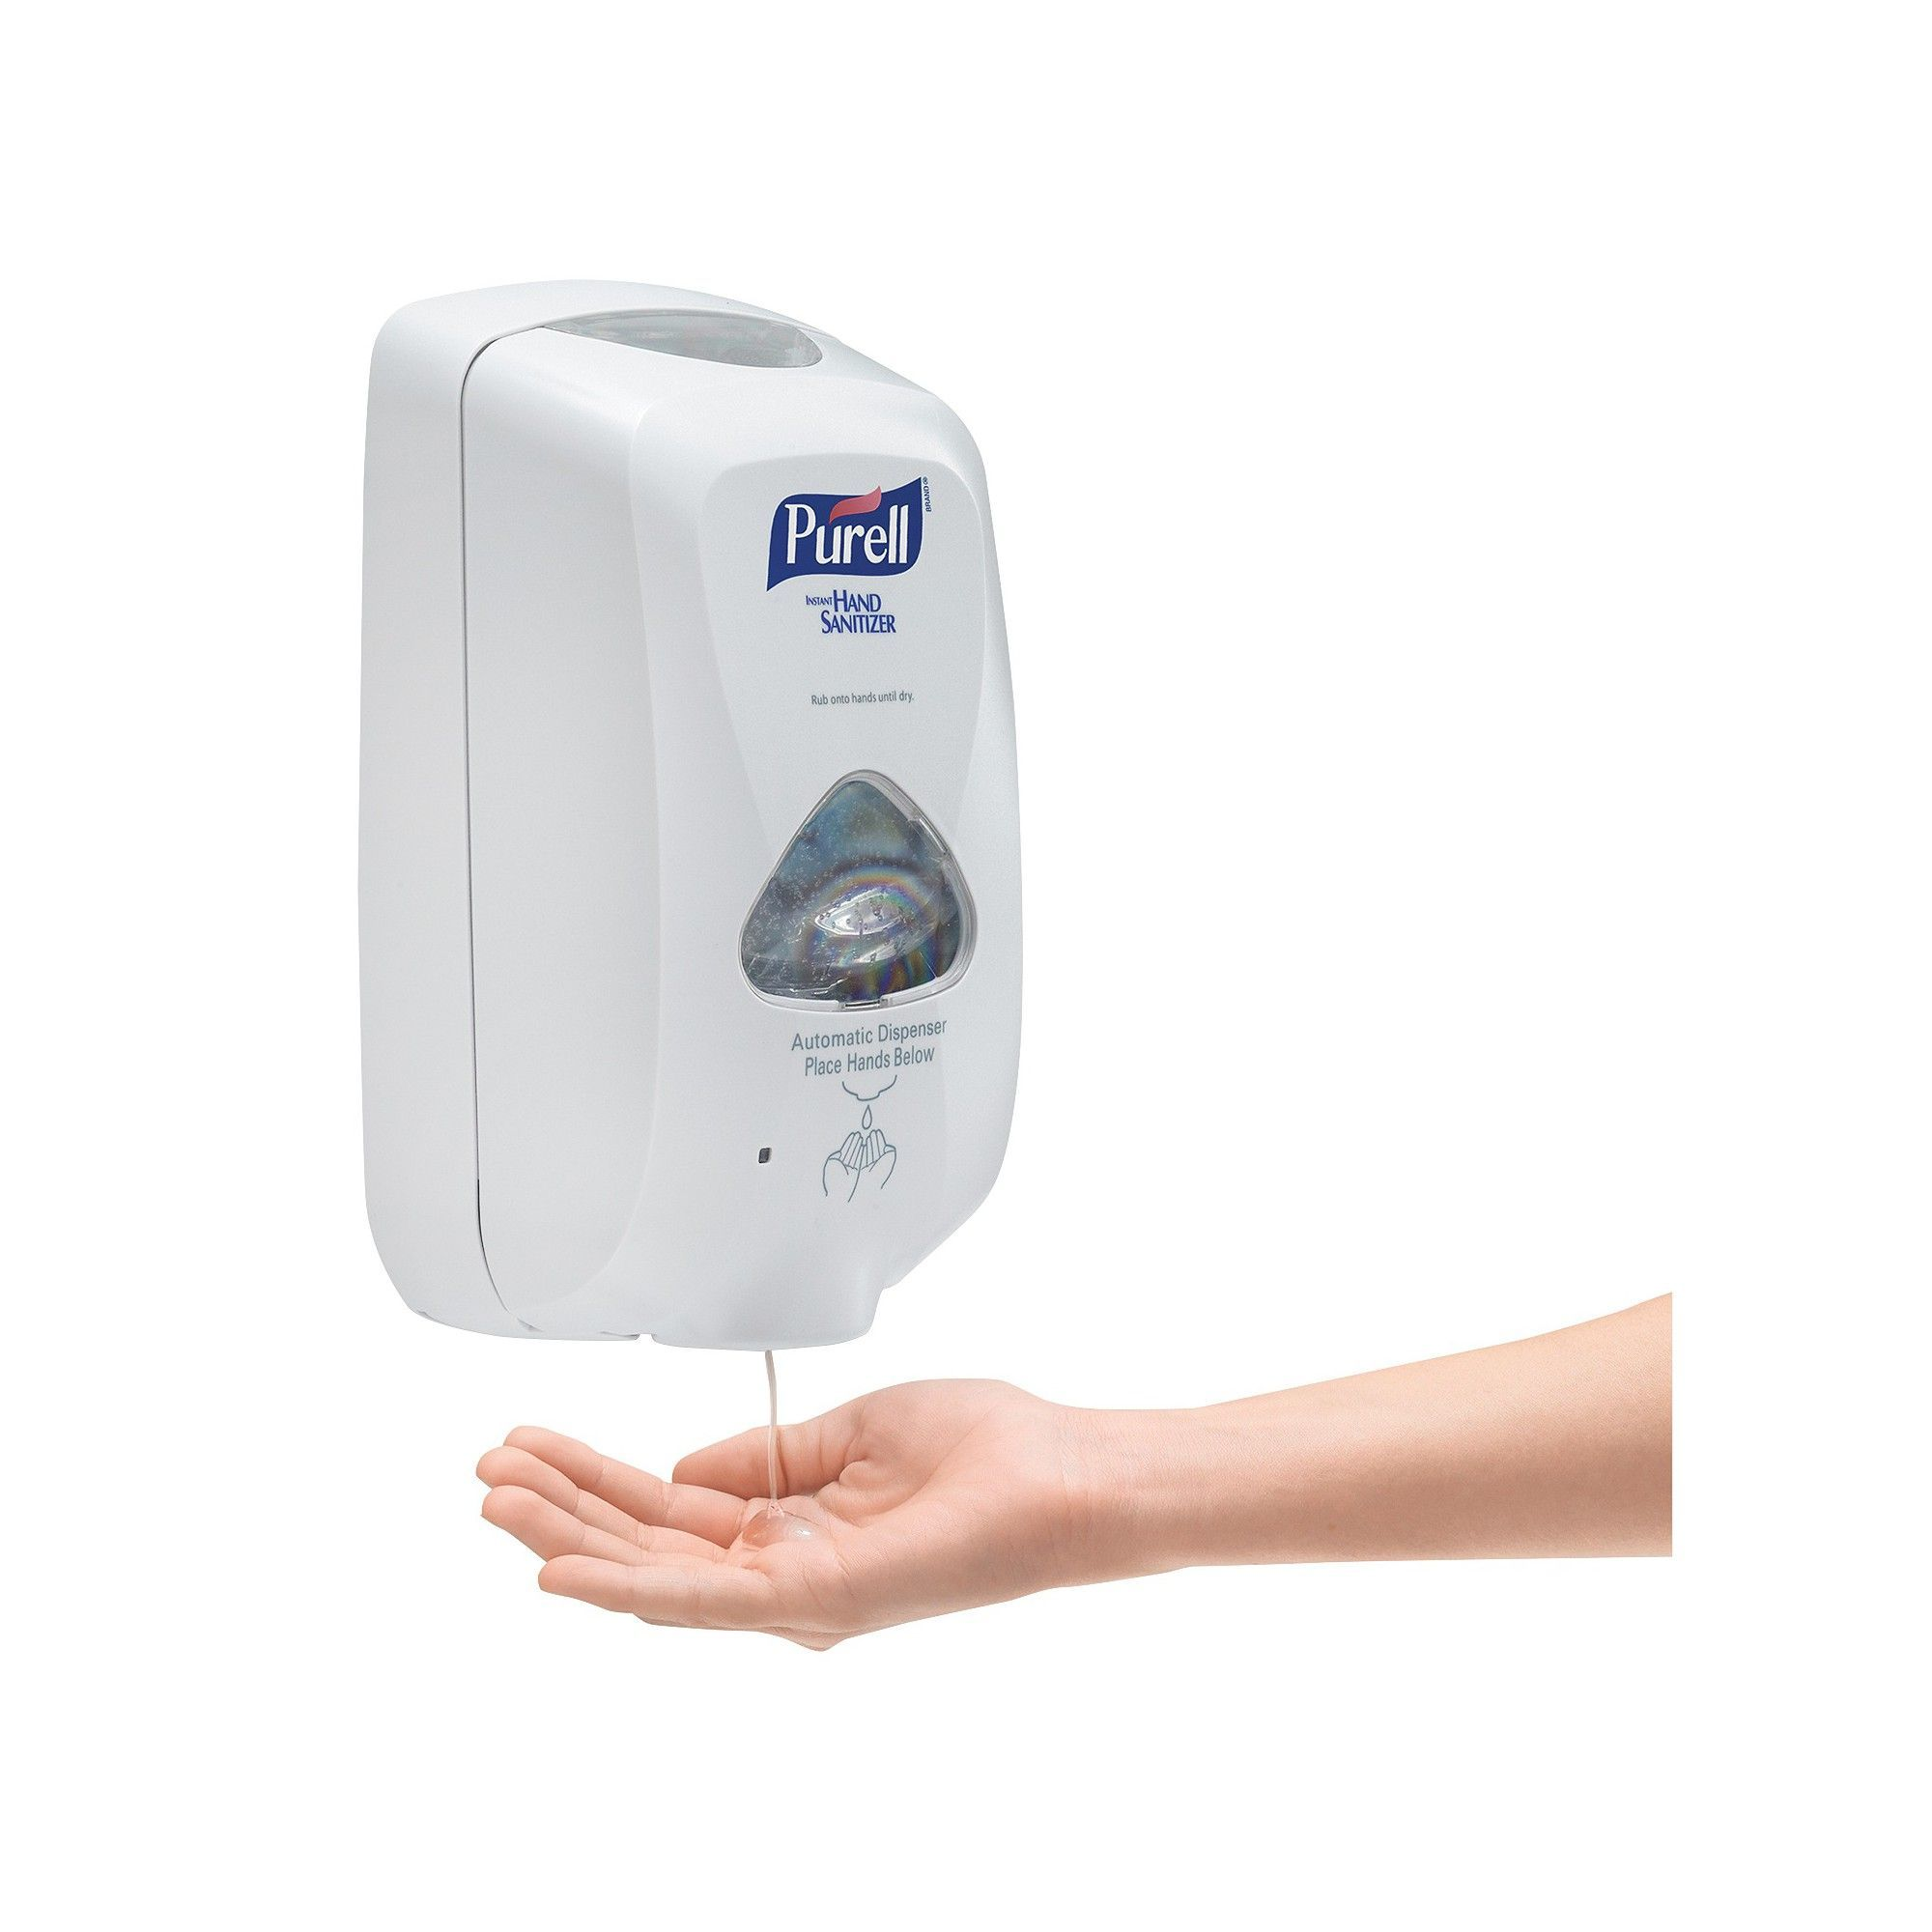 Purell Unscented Hand Sanitizer Products Hand Sanitizer